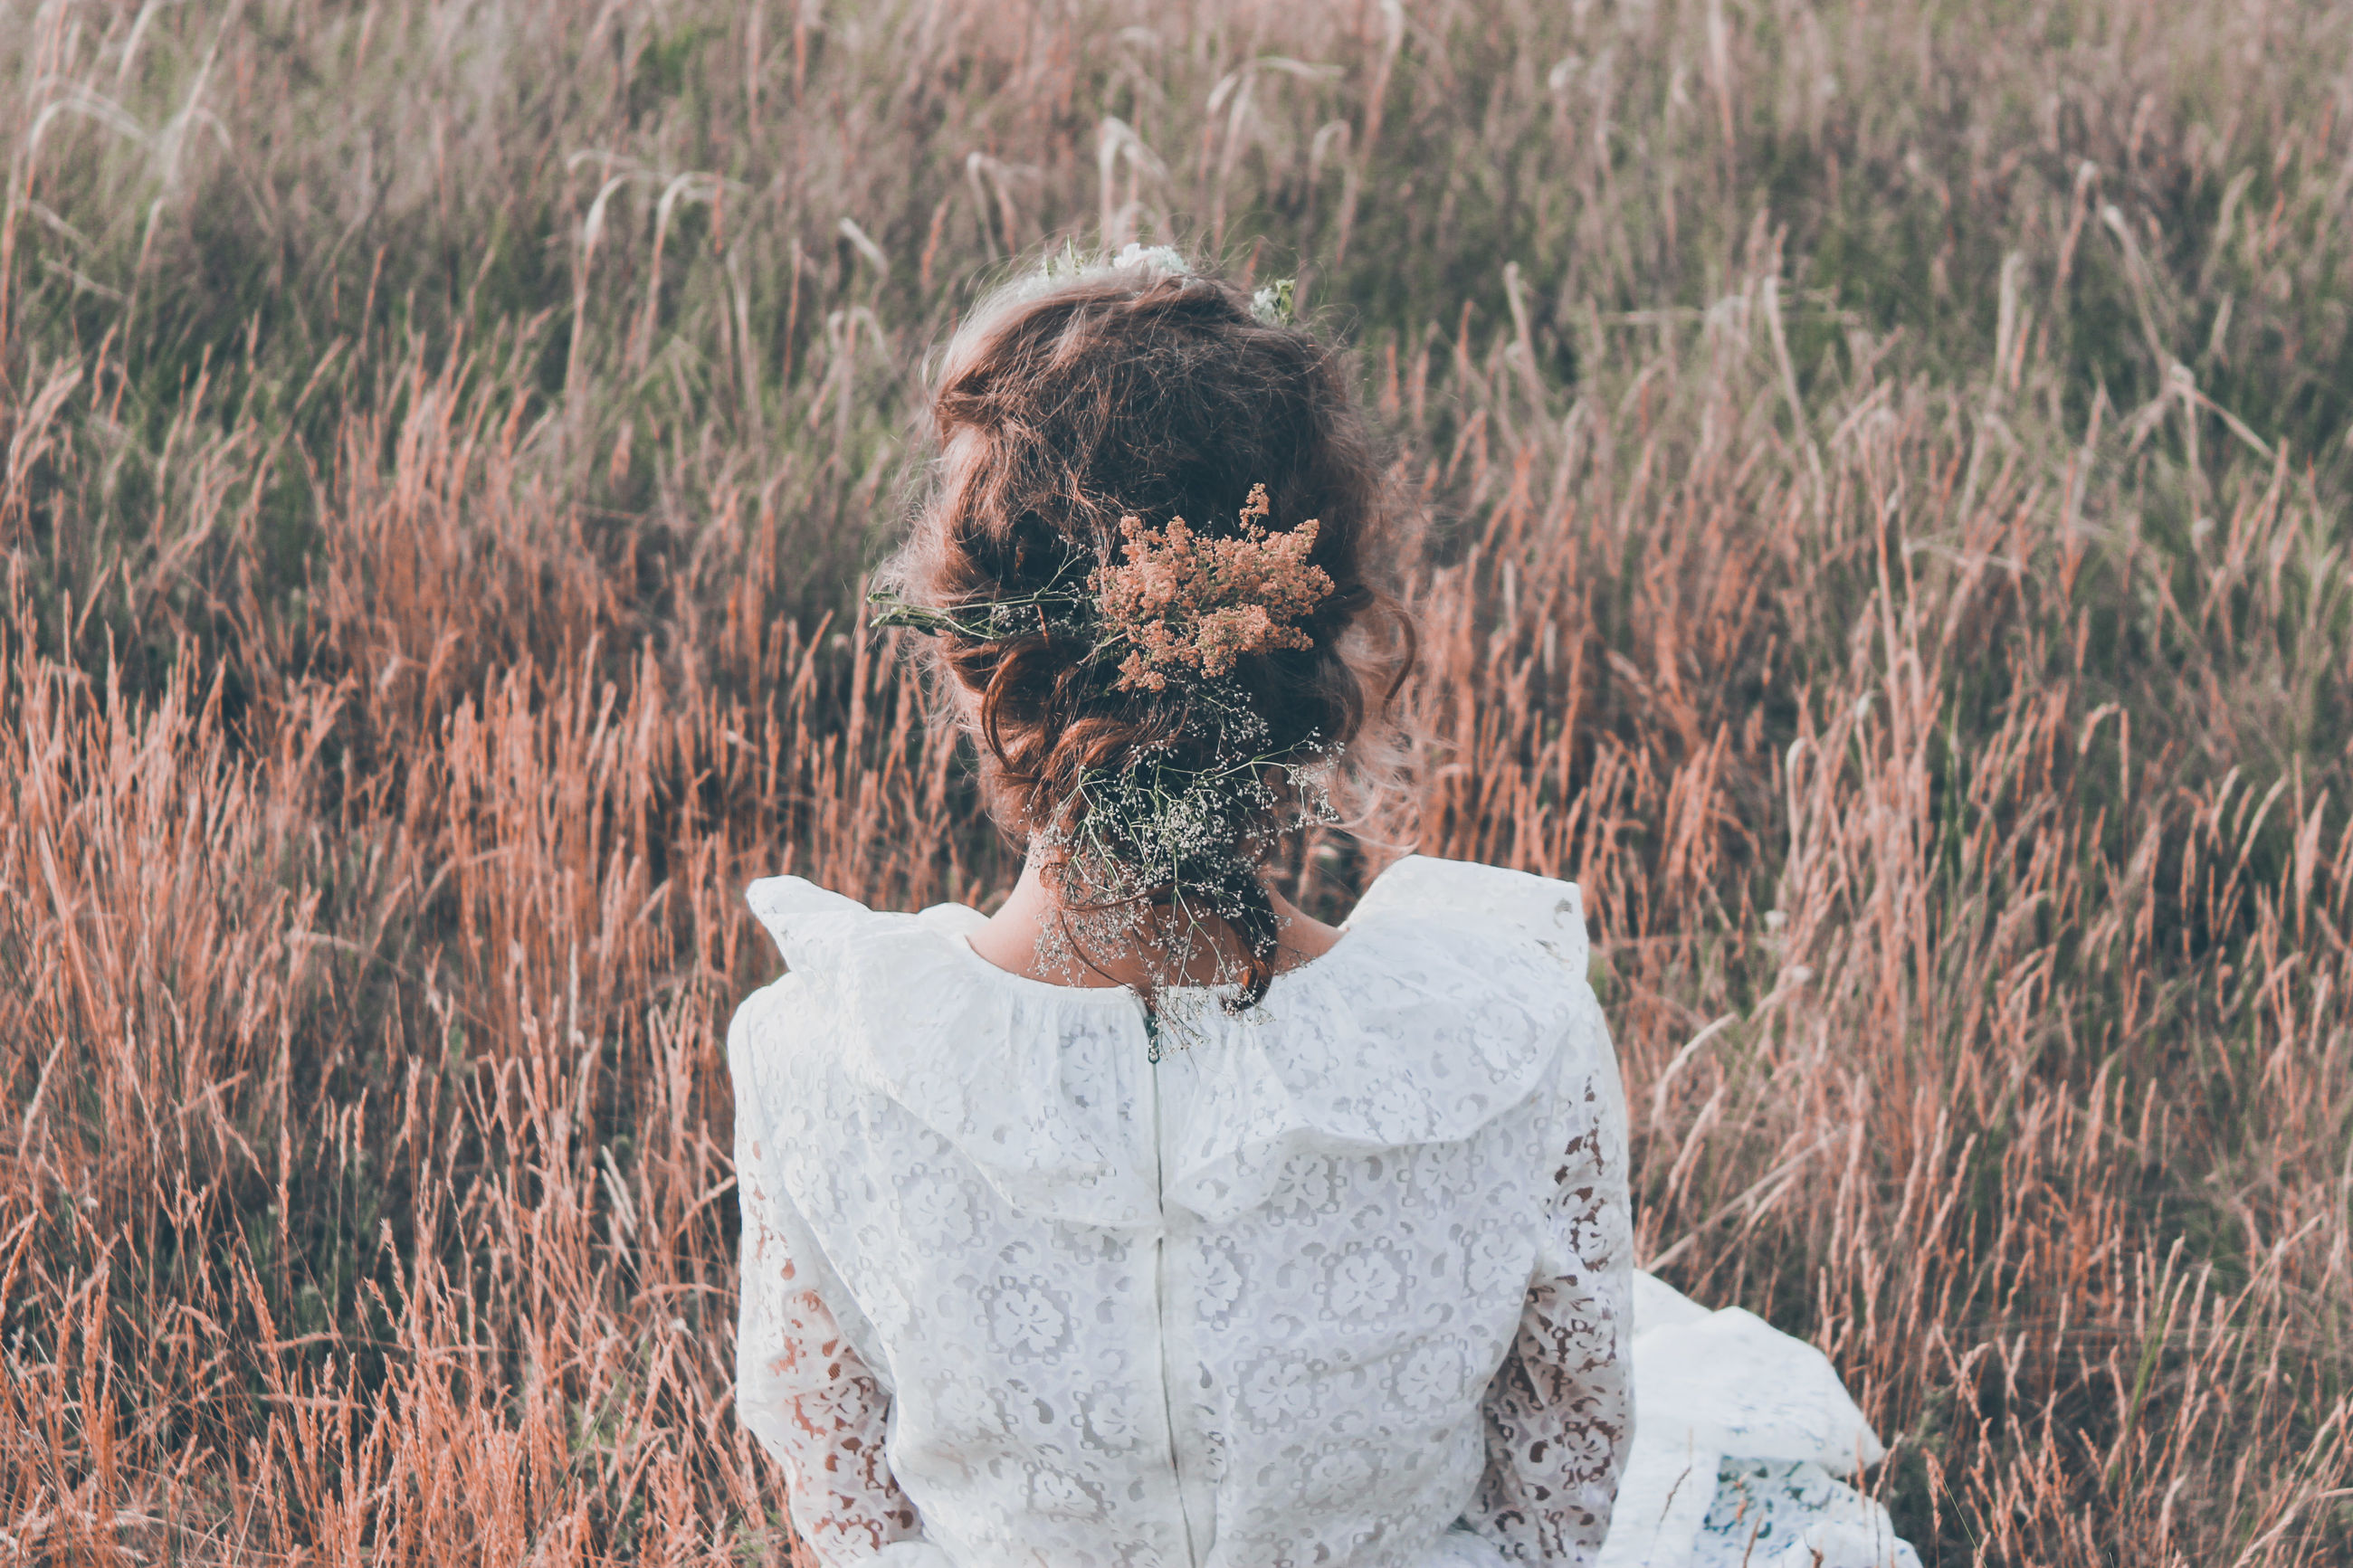 real people, plant, grass, field, land, leisure activity, lifestyles, nature, one person, rear view, day, three quarter length, growth, adult, women, focus on foreground, standing, waist up, young adult, outdoors, hairstyle